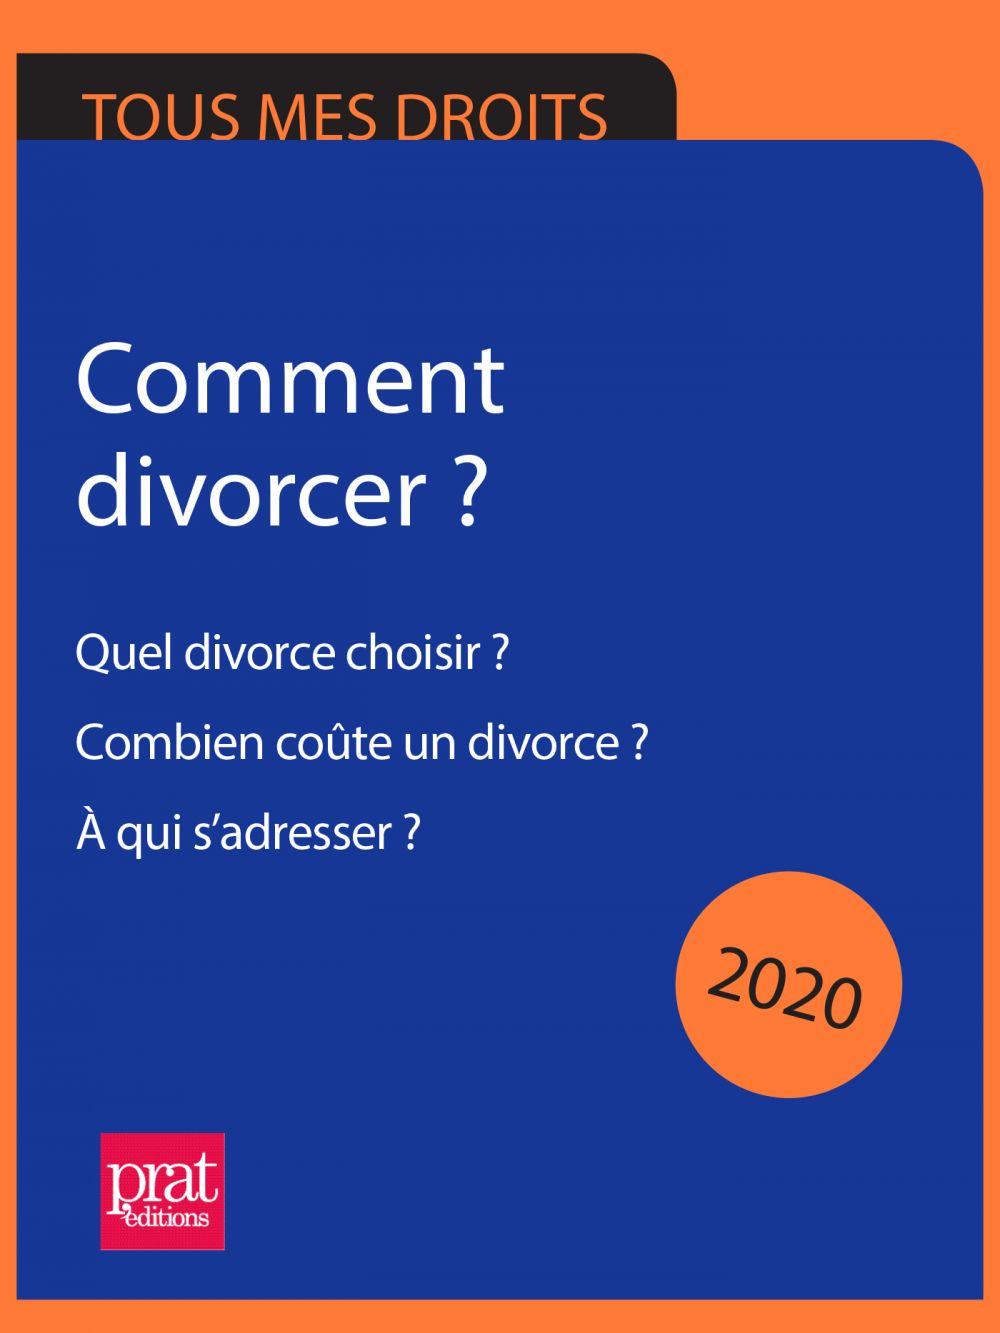 Comment divorcer ? 2020